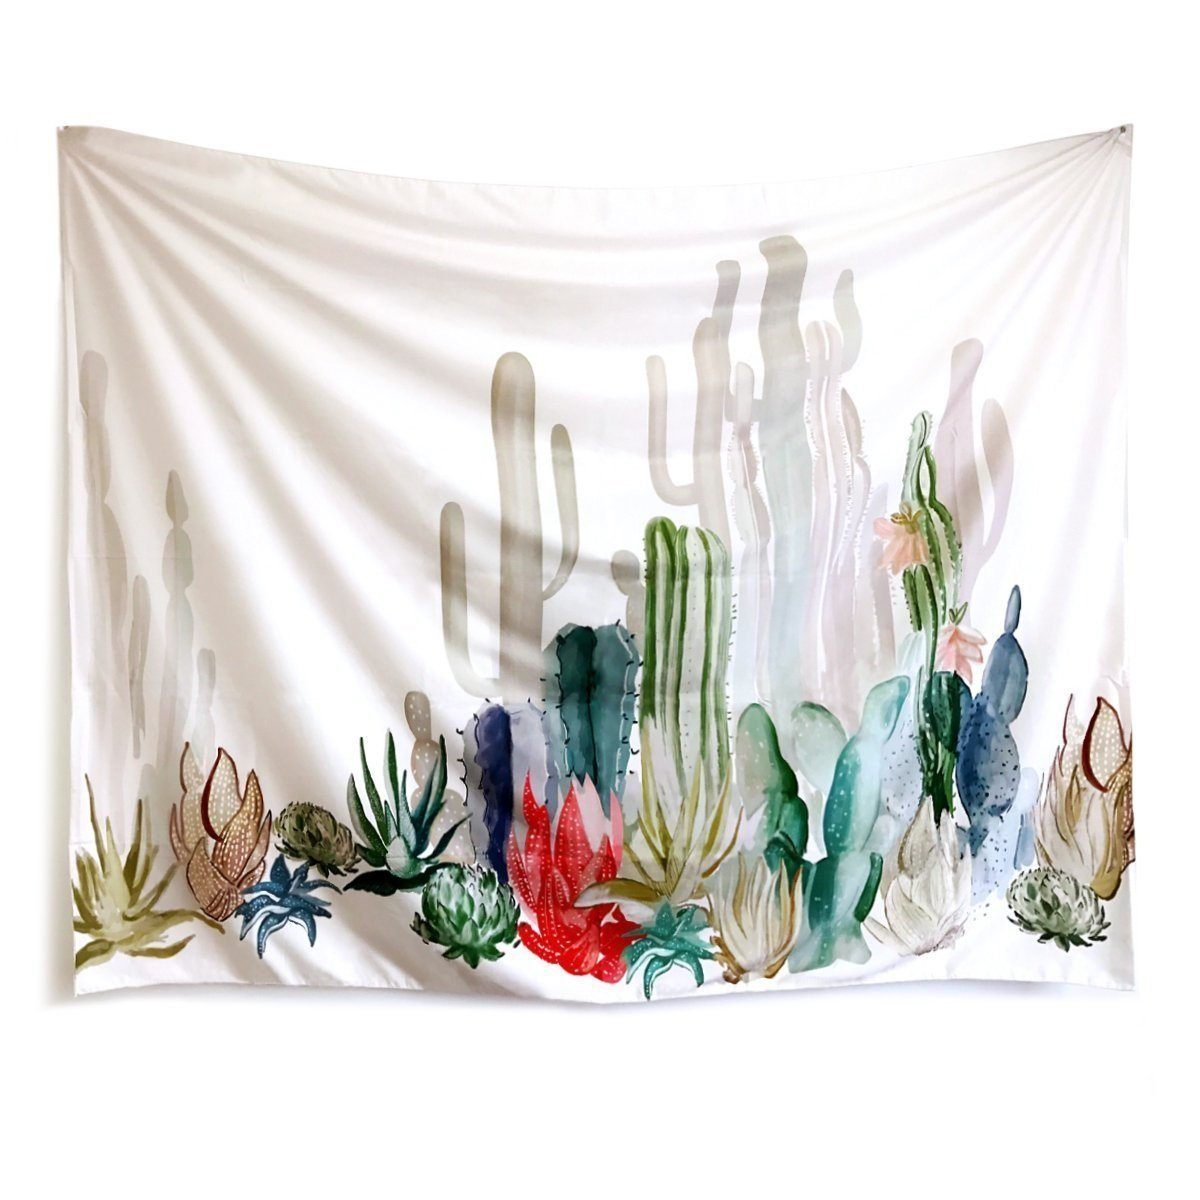 Cactus Landscape Wall Tapestry Wall Hangings Boho Bedroom Decoration Tablecloth Home Decor (58H x 78W, Cactus) Shukqueen